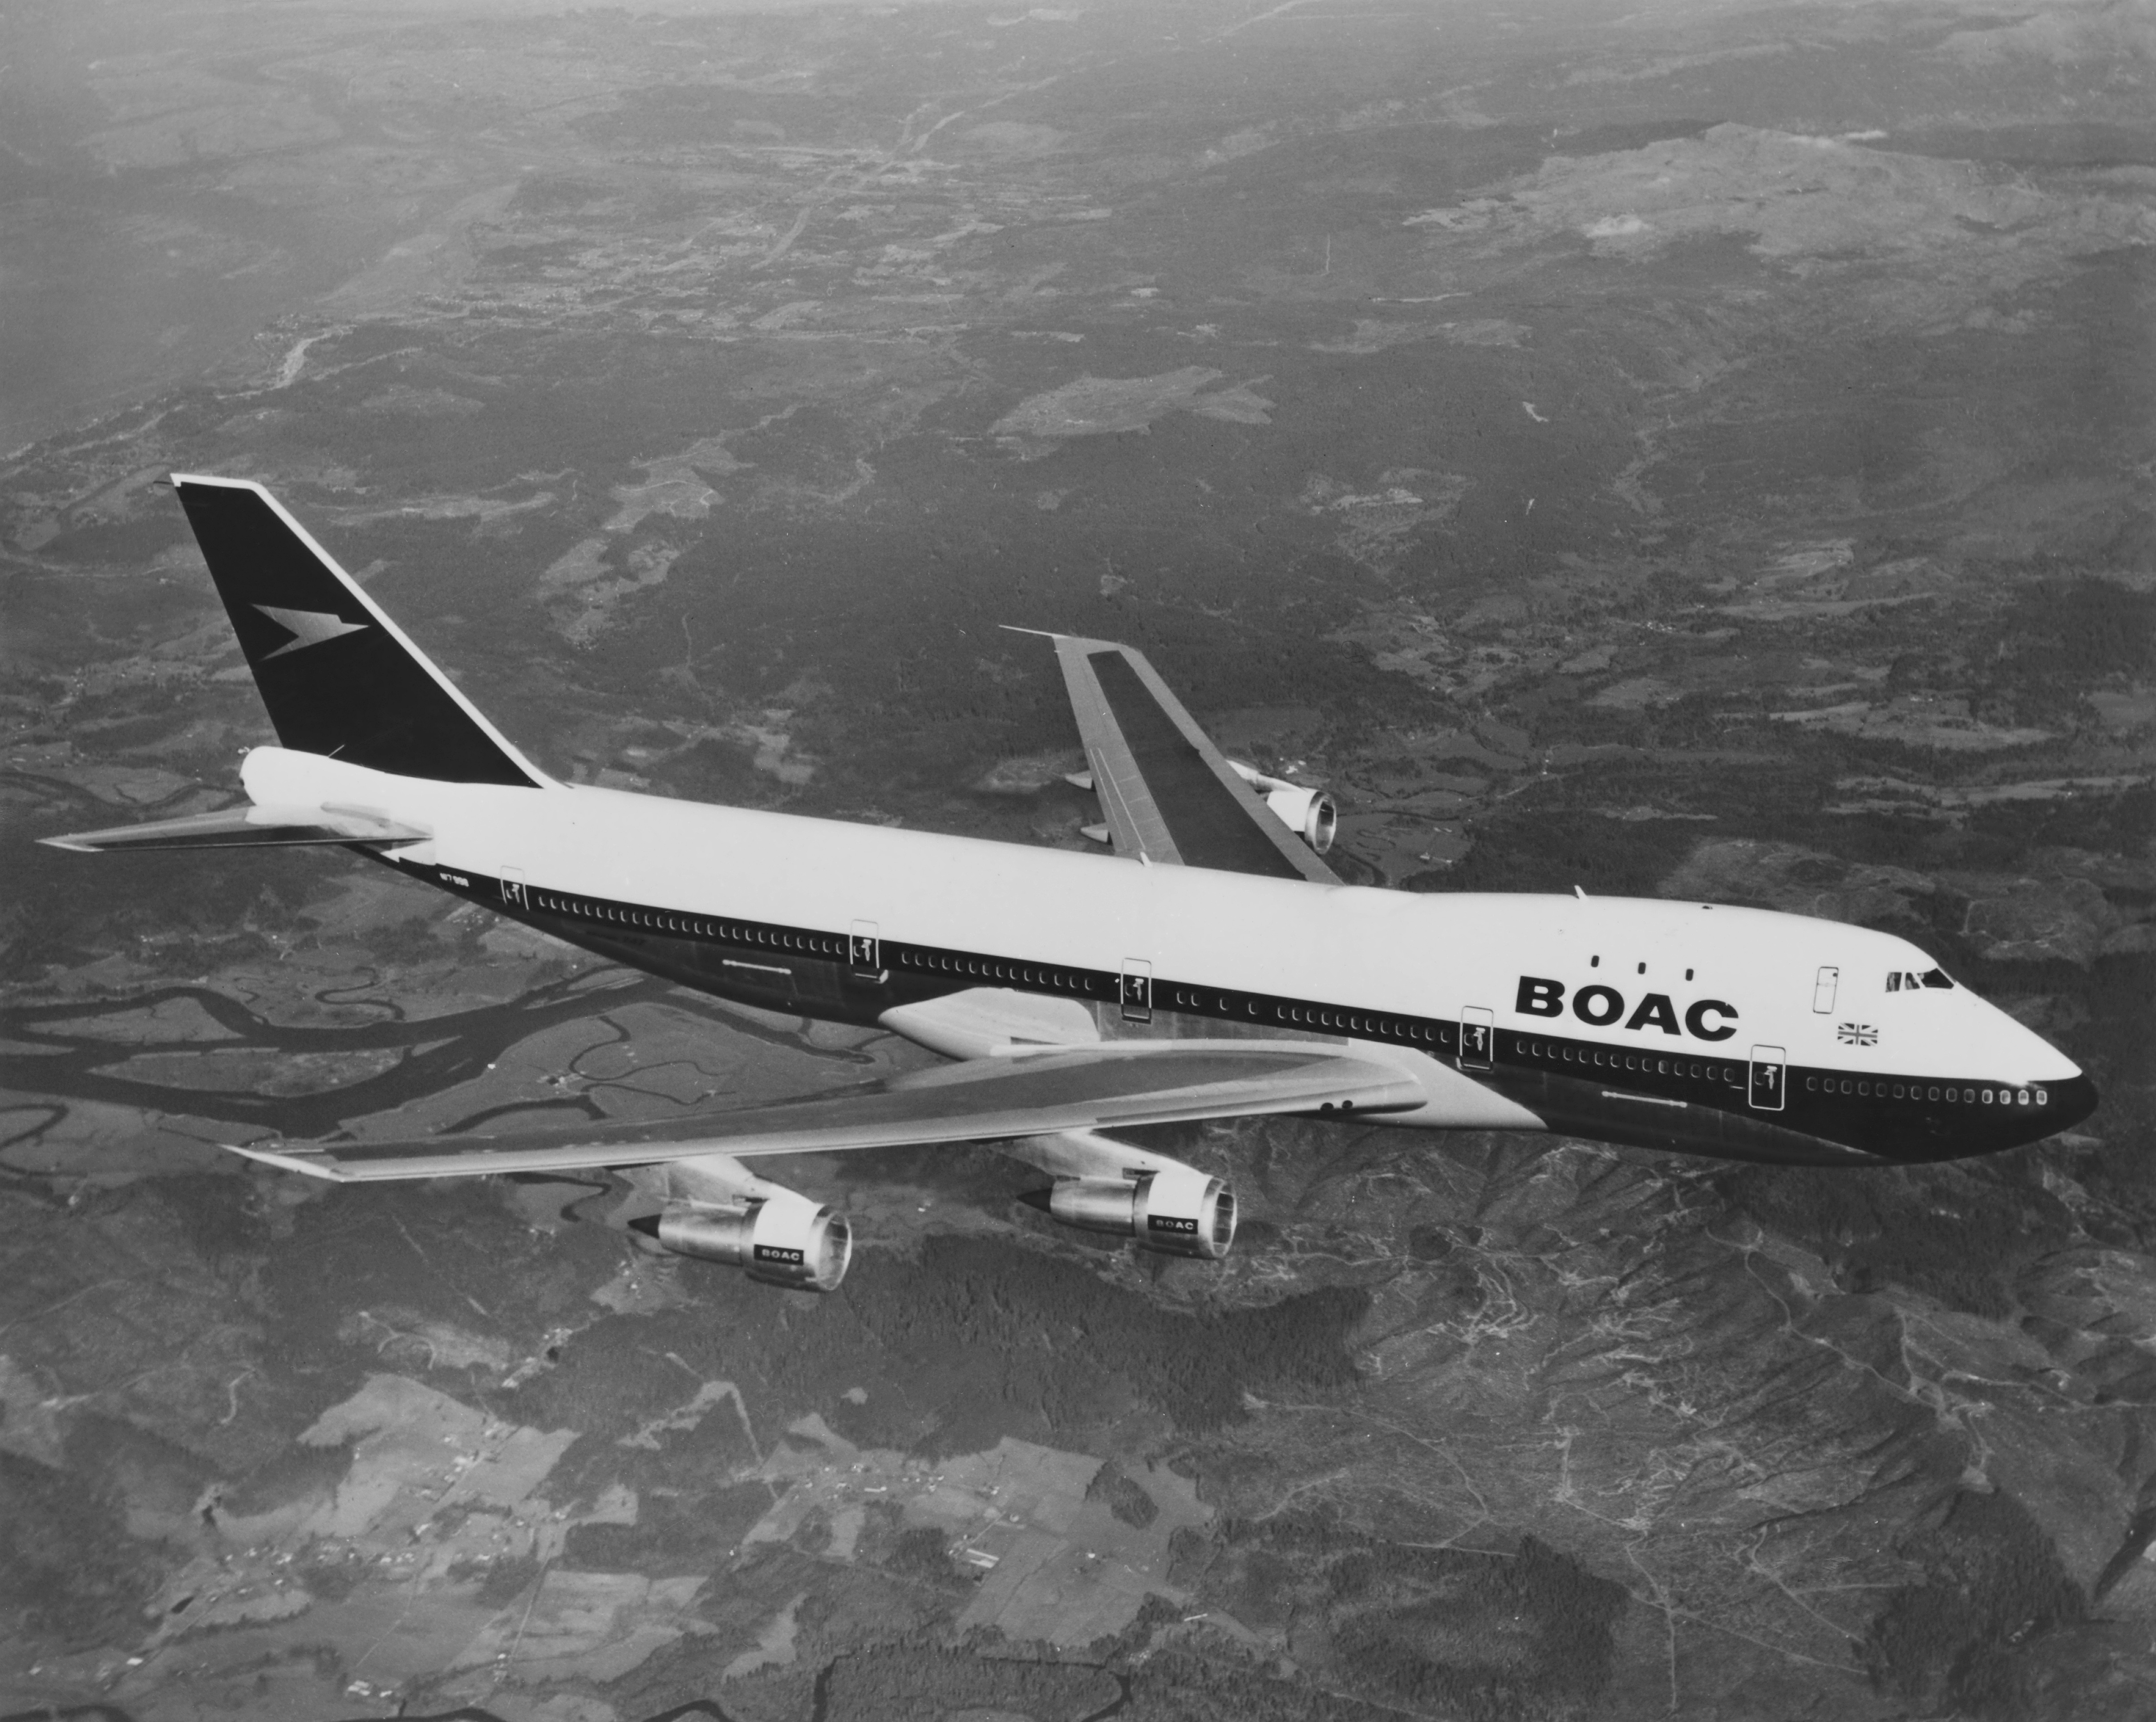 En Boeing 747 fra det daværende BOAC (British Overseas Airways Corporation) fotograferet over Storbritannien den 7. april 1971. Foto: Fox Photos/Hulton Archive/Getty Images